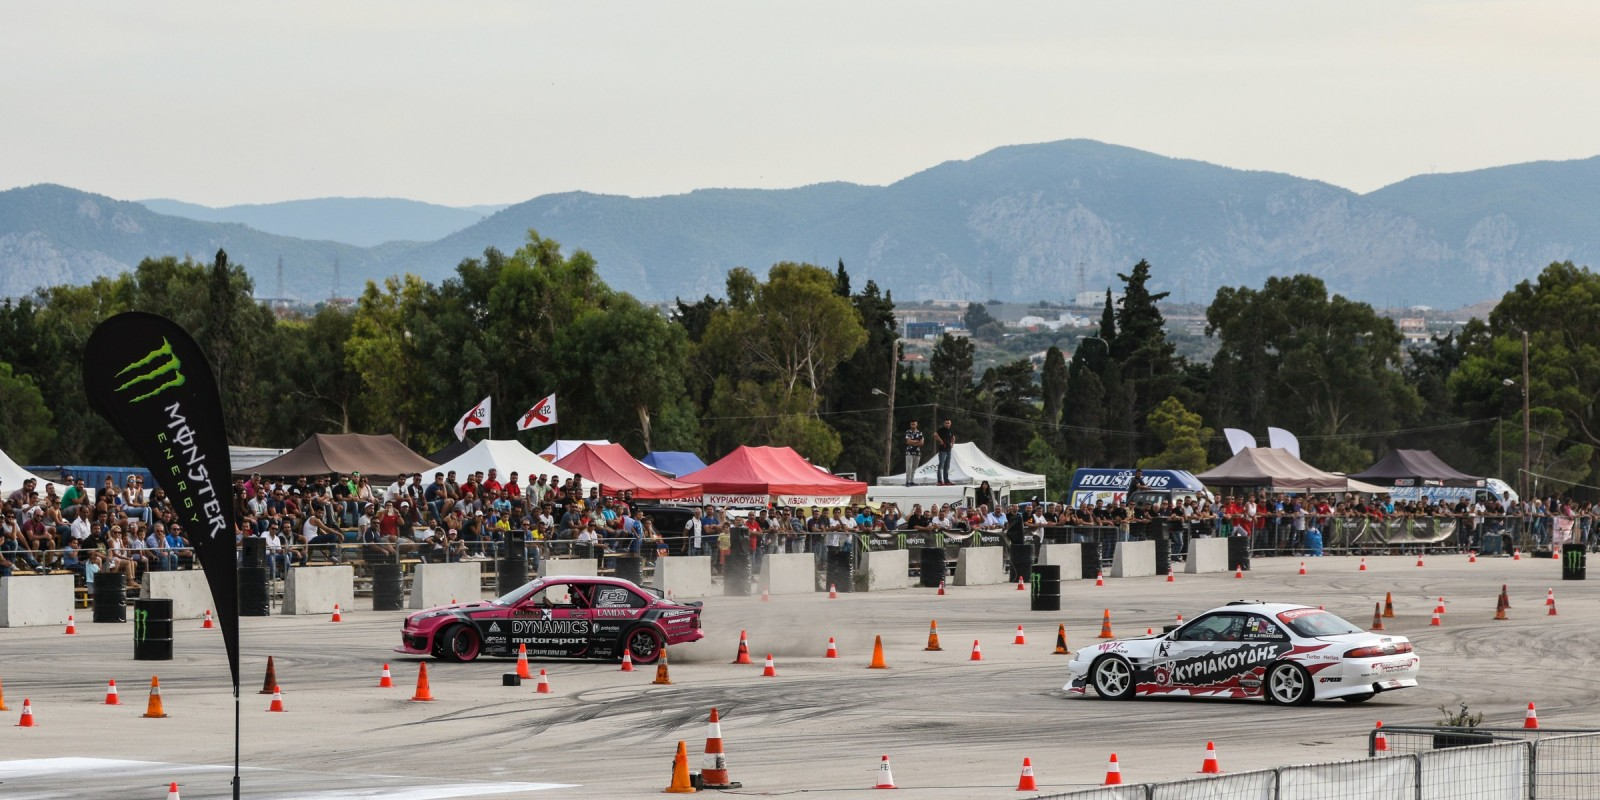 Pictures feat Greek drivers during Gymkhana GRiD Qualifier in Loutraki Greece 2016, Greek version